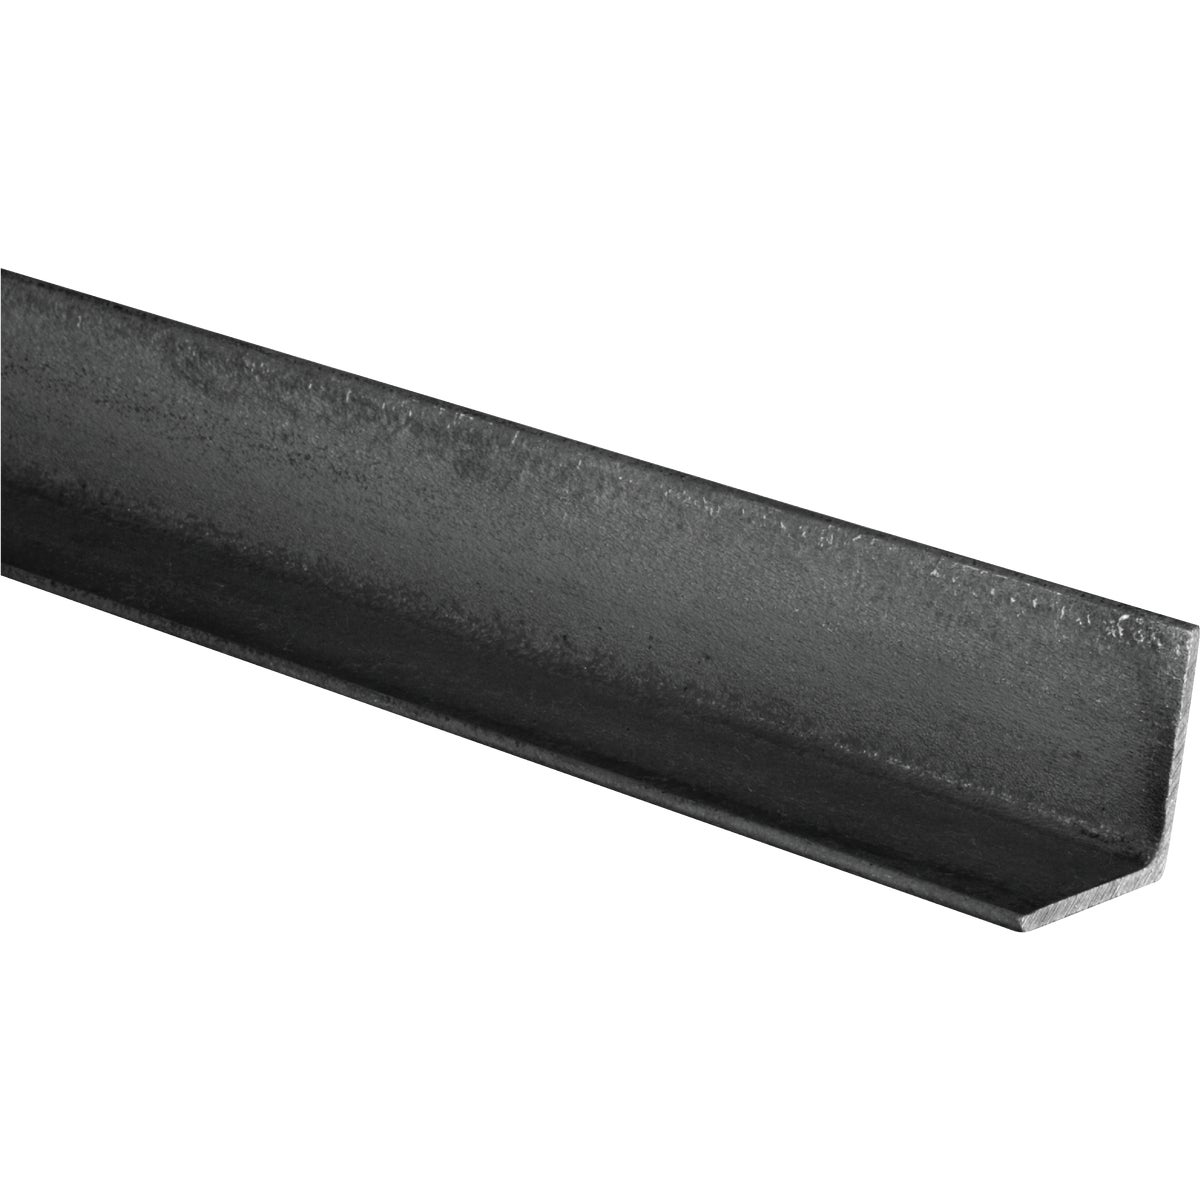 1/8X1X4' HR STEEL ANGLE - N215434 by National Mfg Co